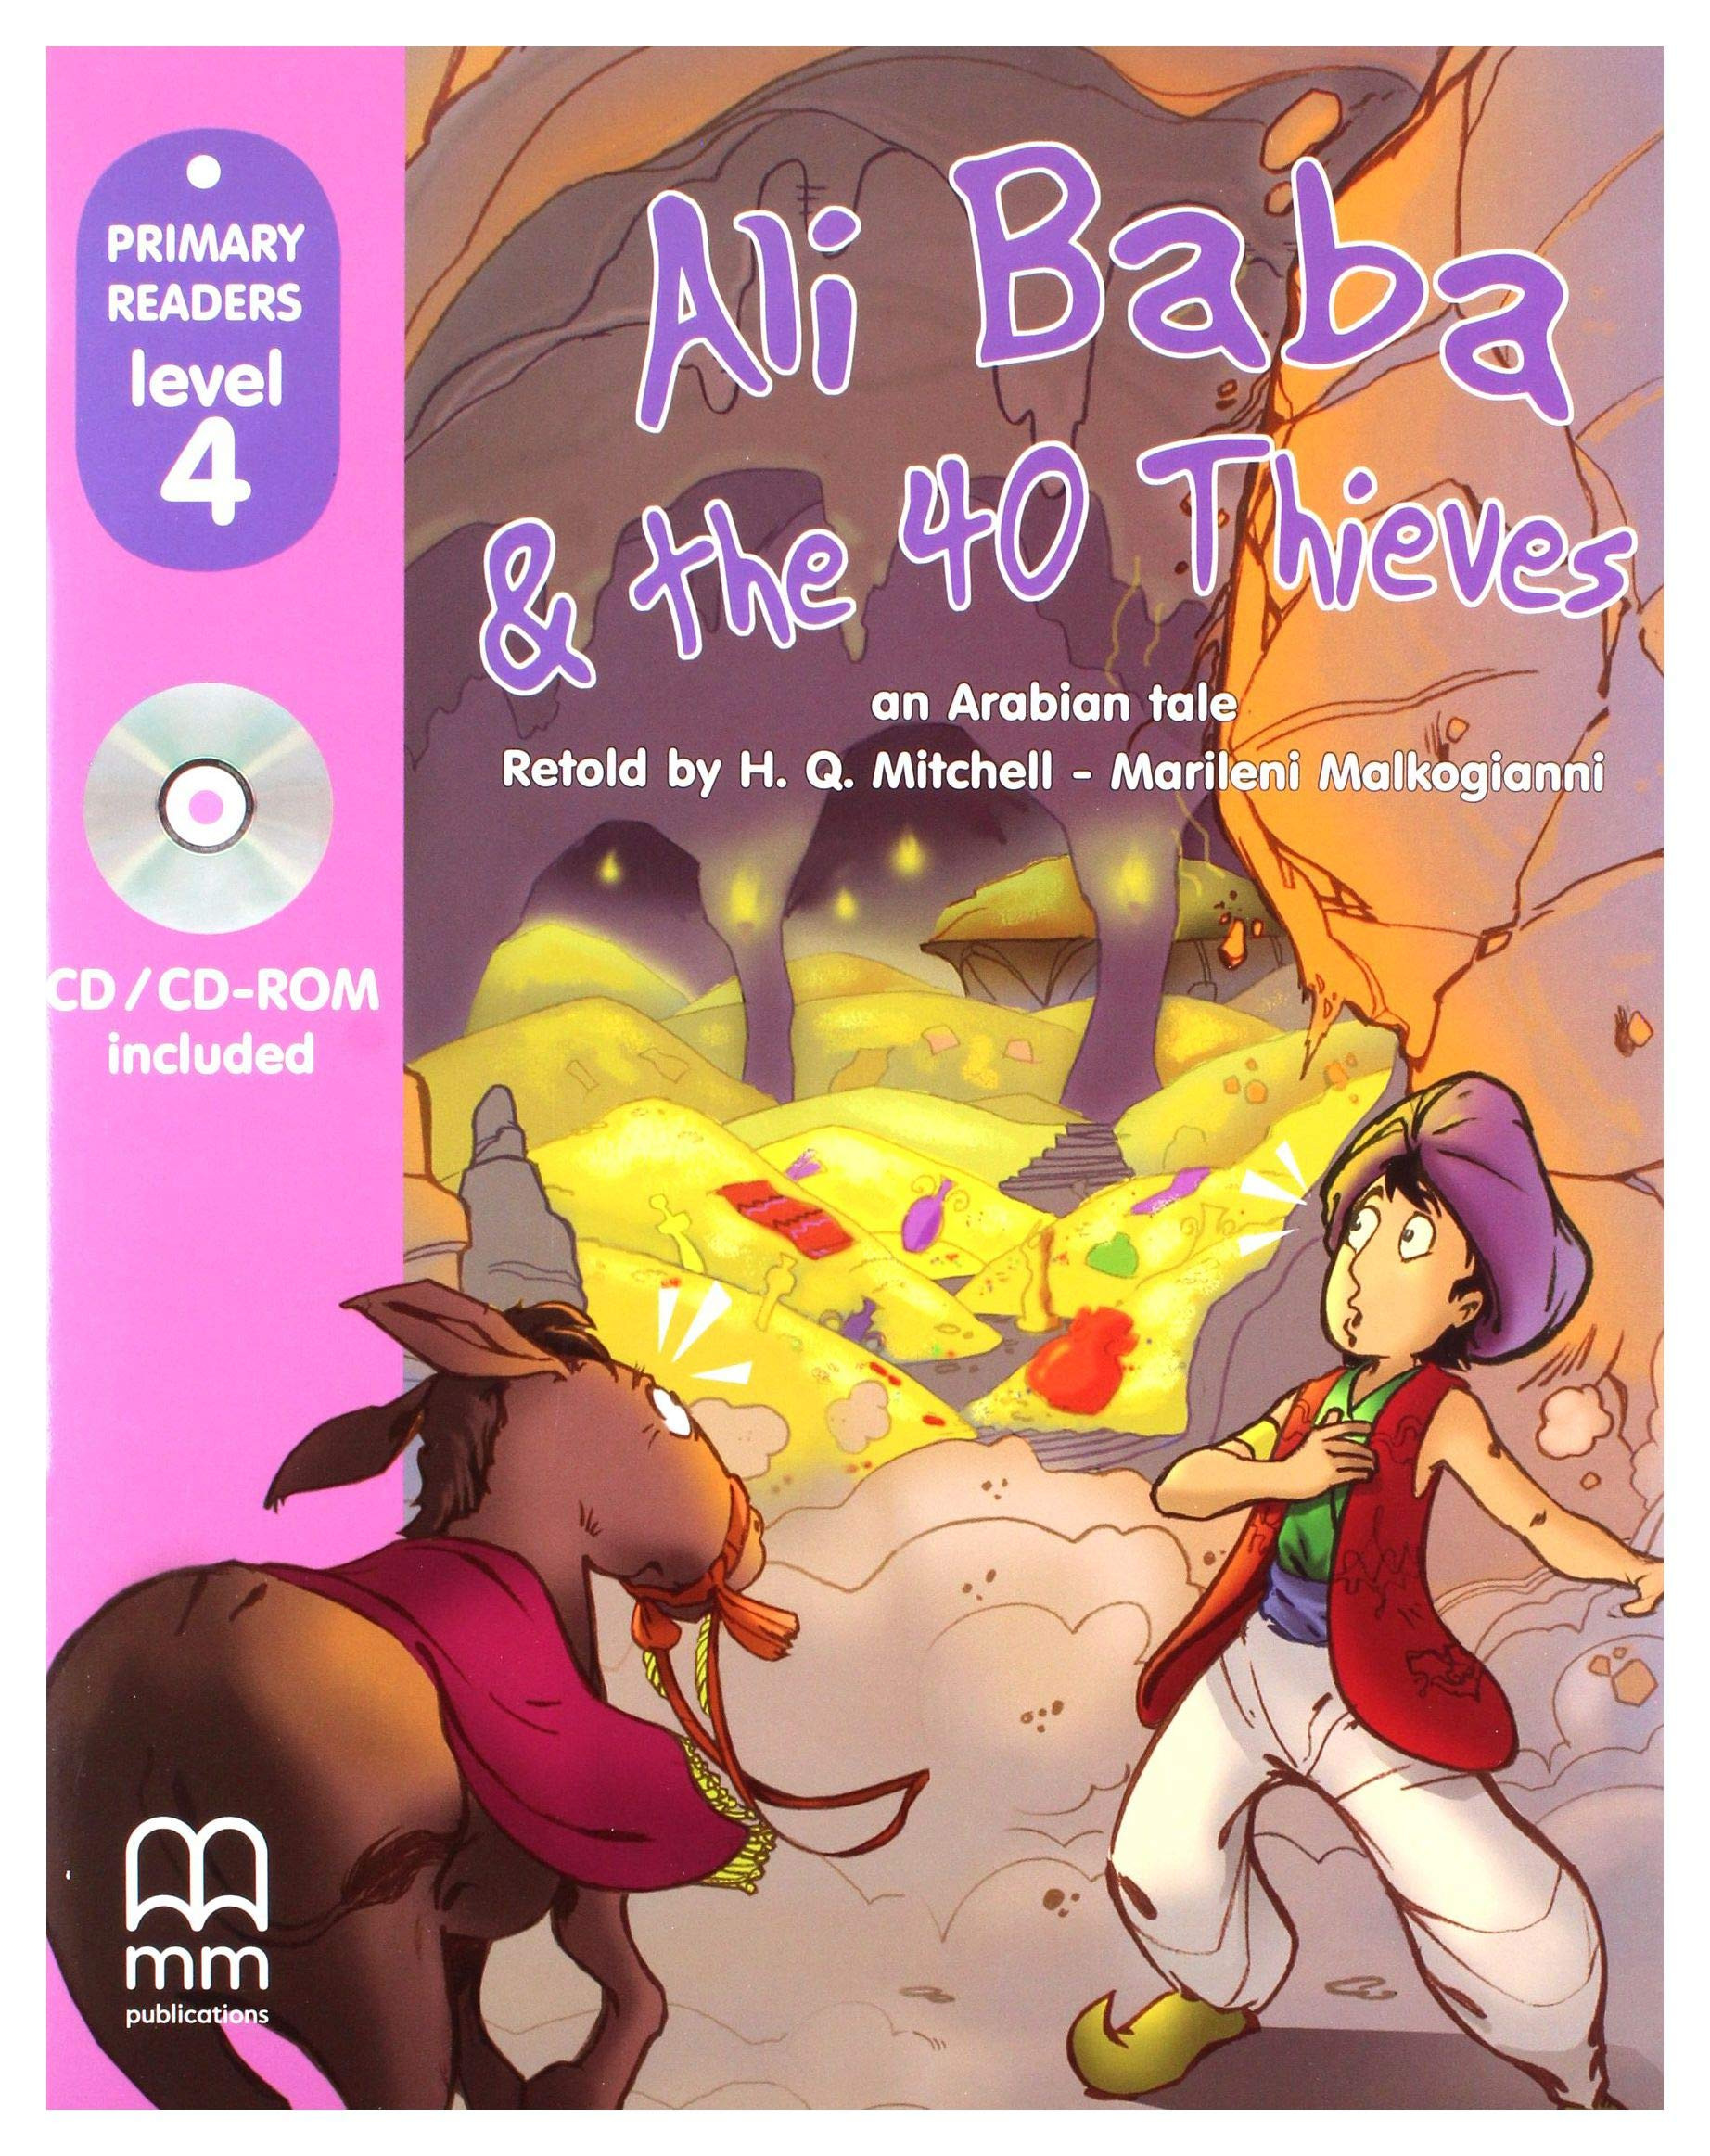 Ali Baba & the 40 thieves + CD